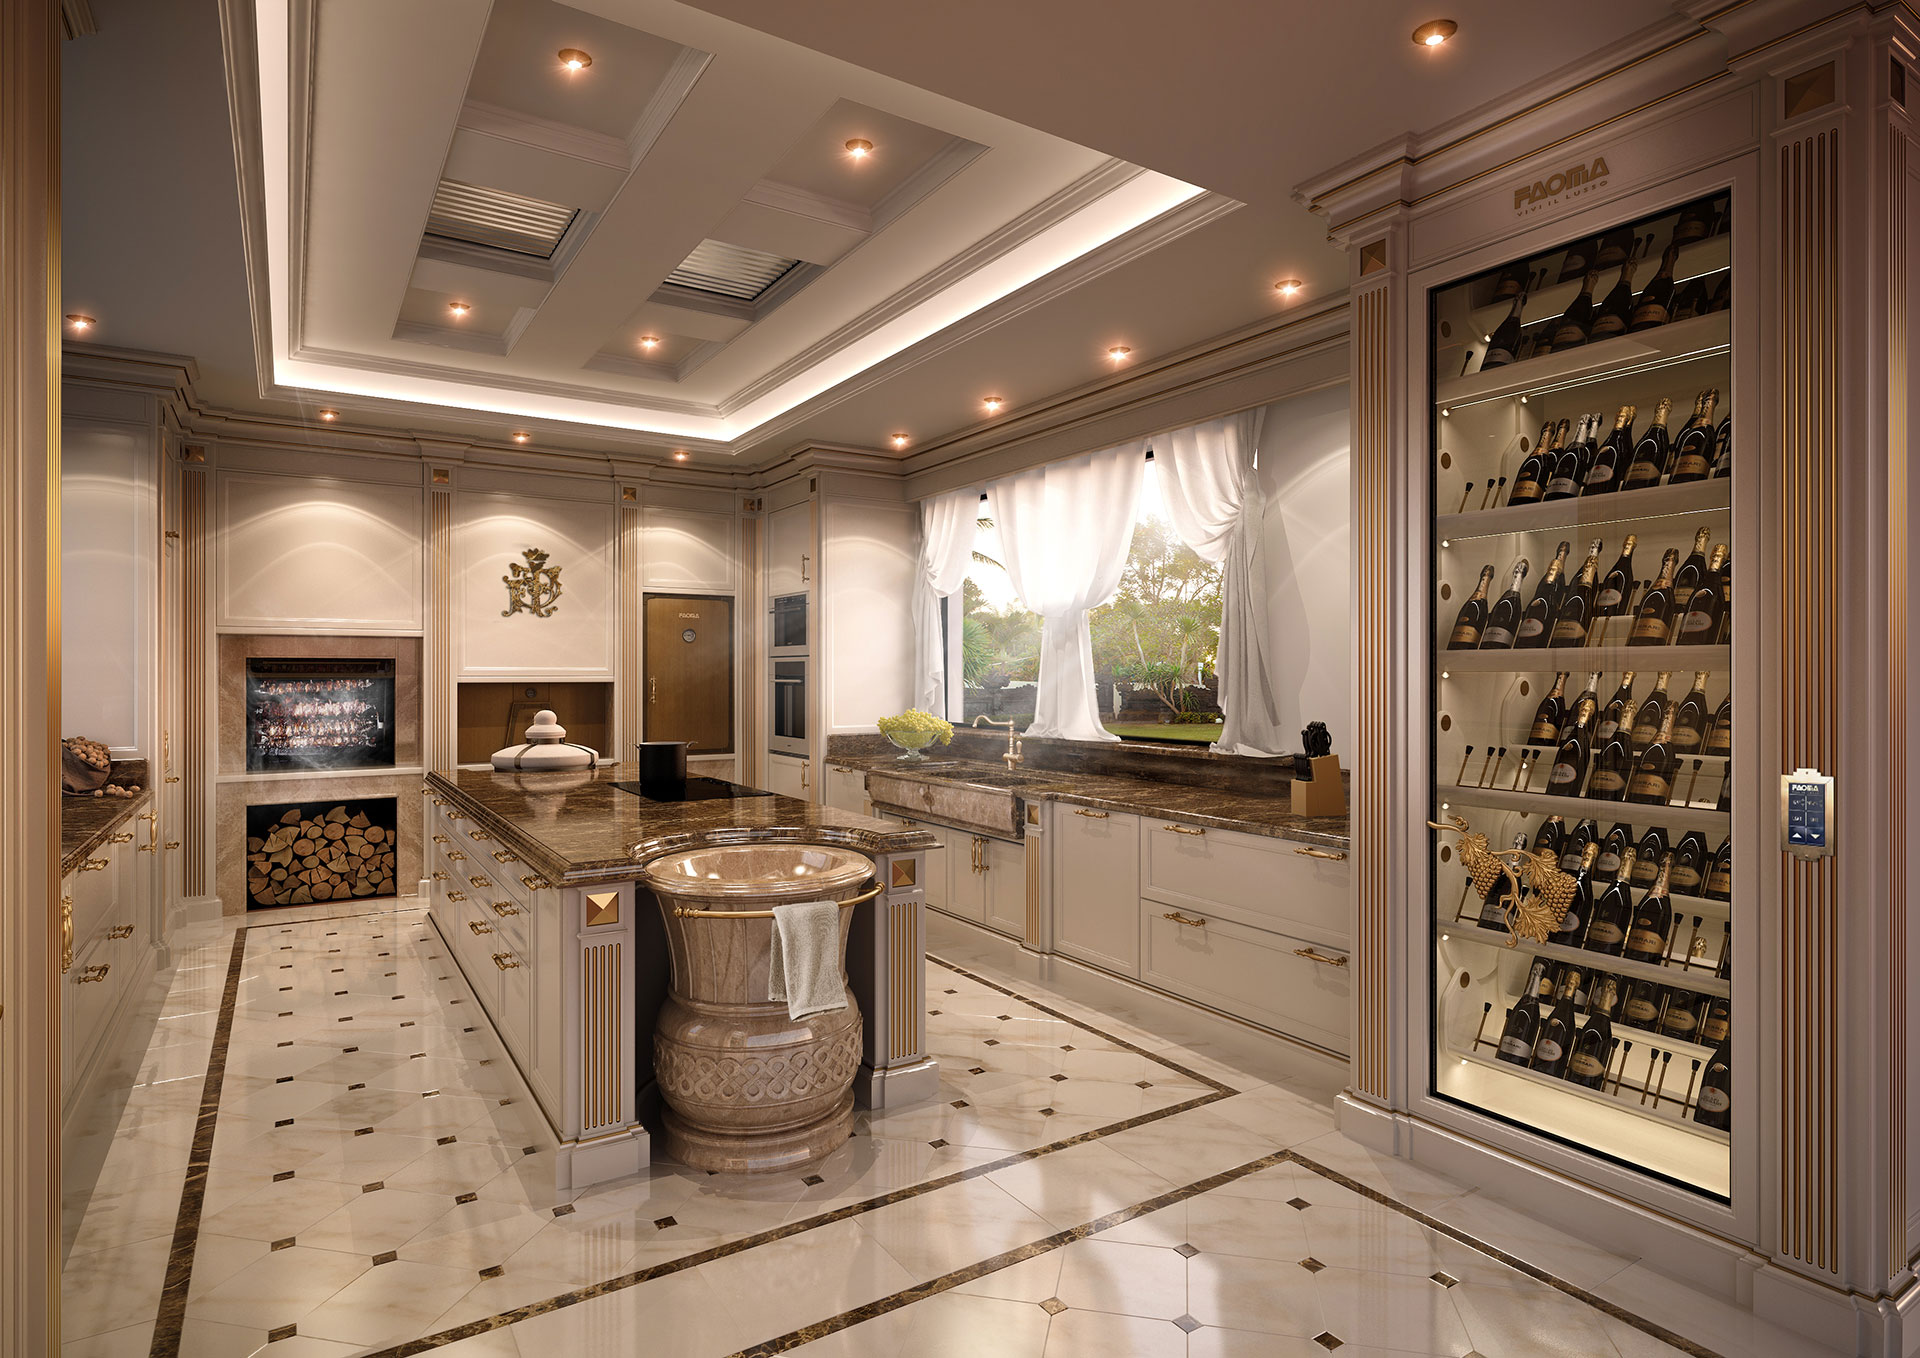 Faoma Luxury Ivory Kitchen